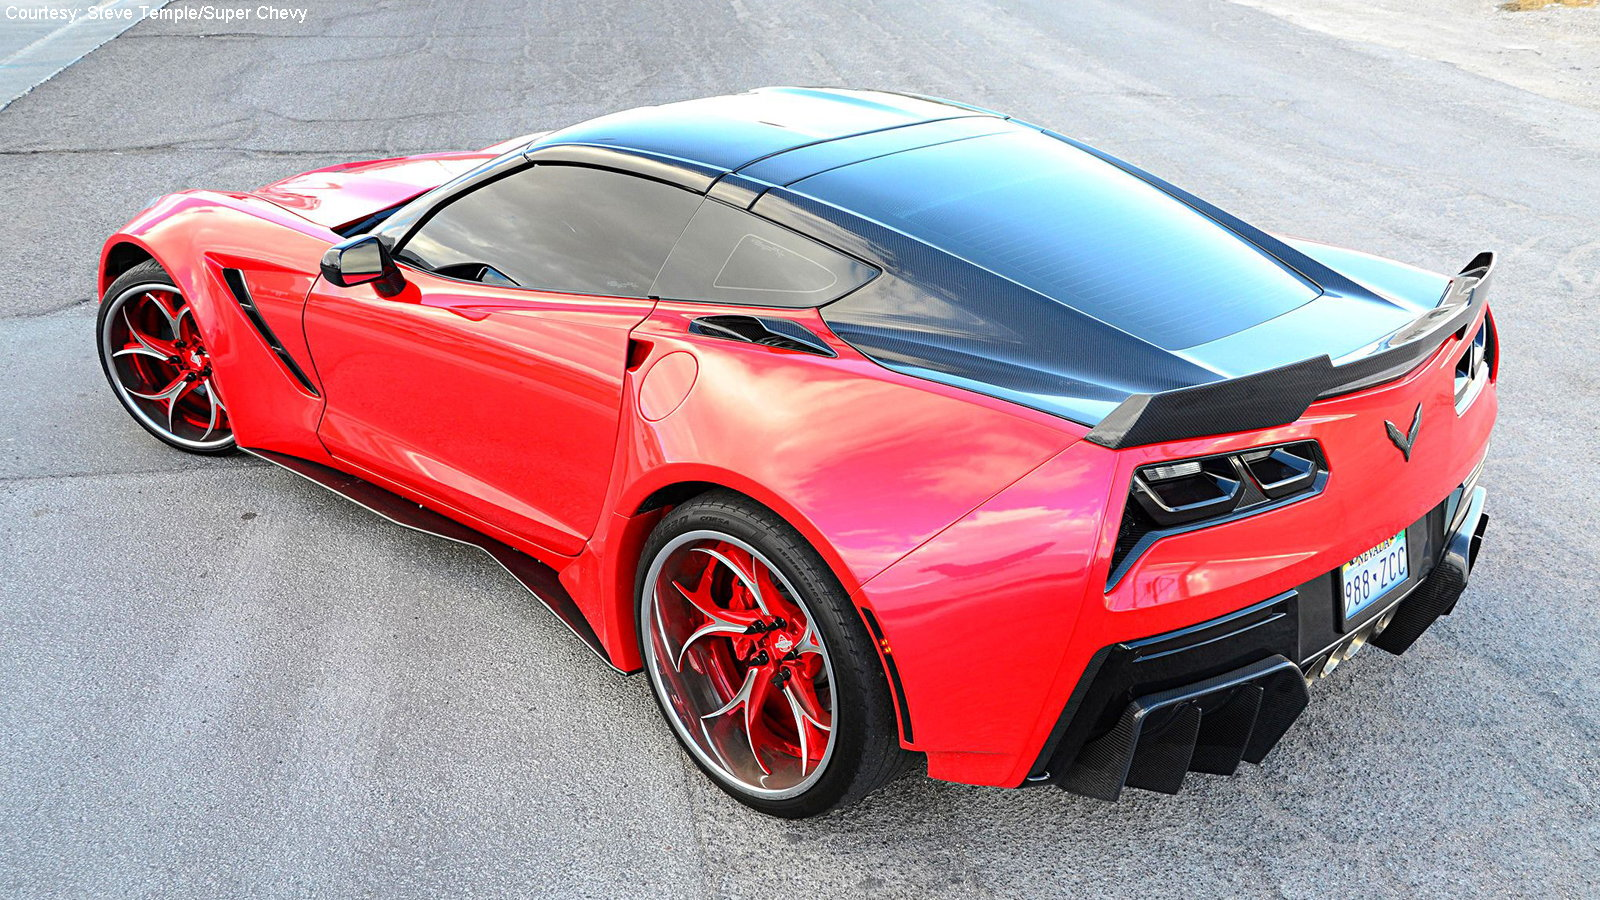 Widebody Corvette Looks as Good as it Drives